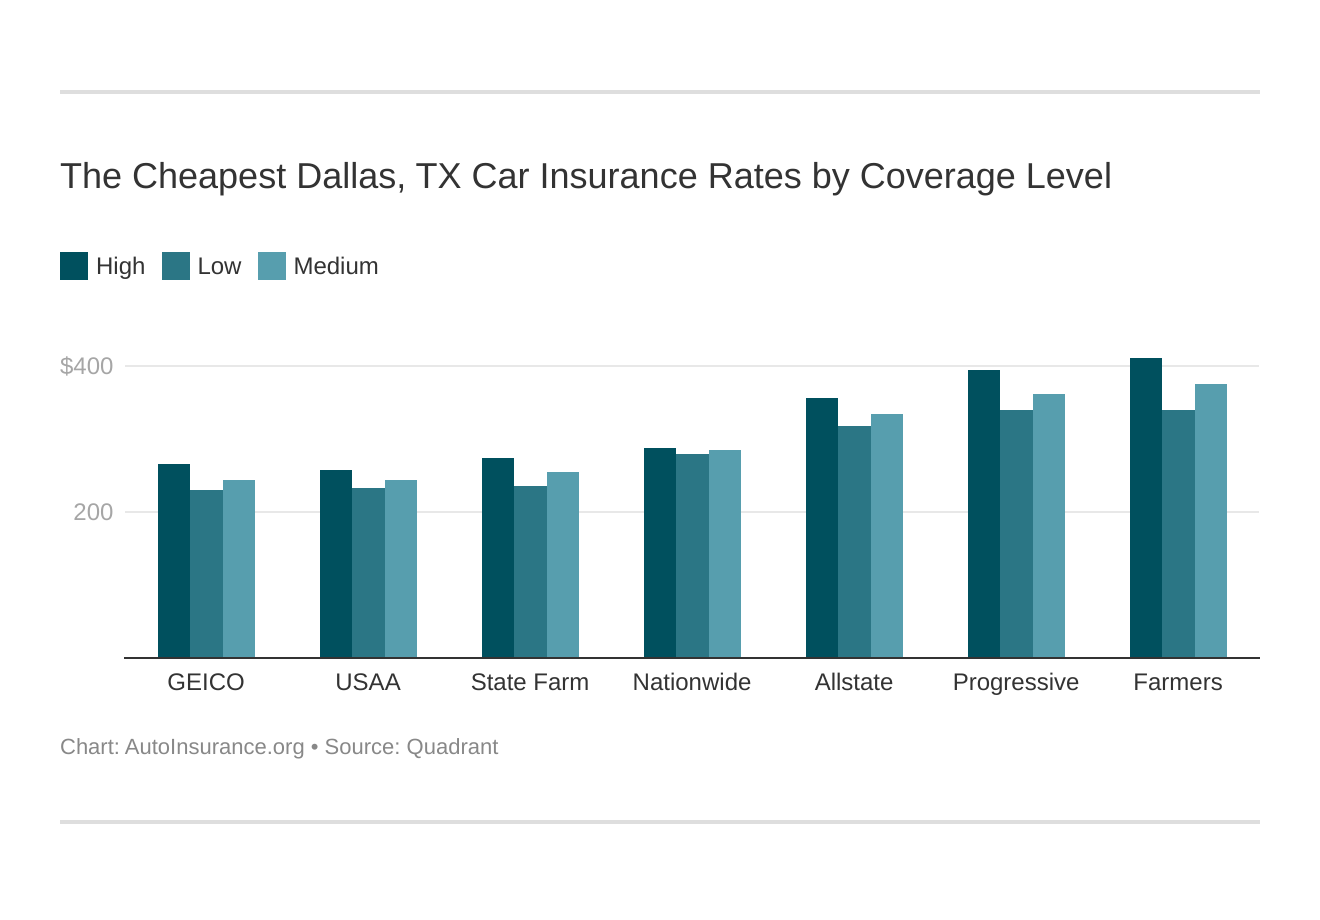 The Cheapest Dallas, TX Car Insurance Rates by Coverage Level